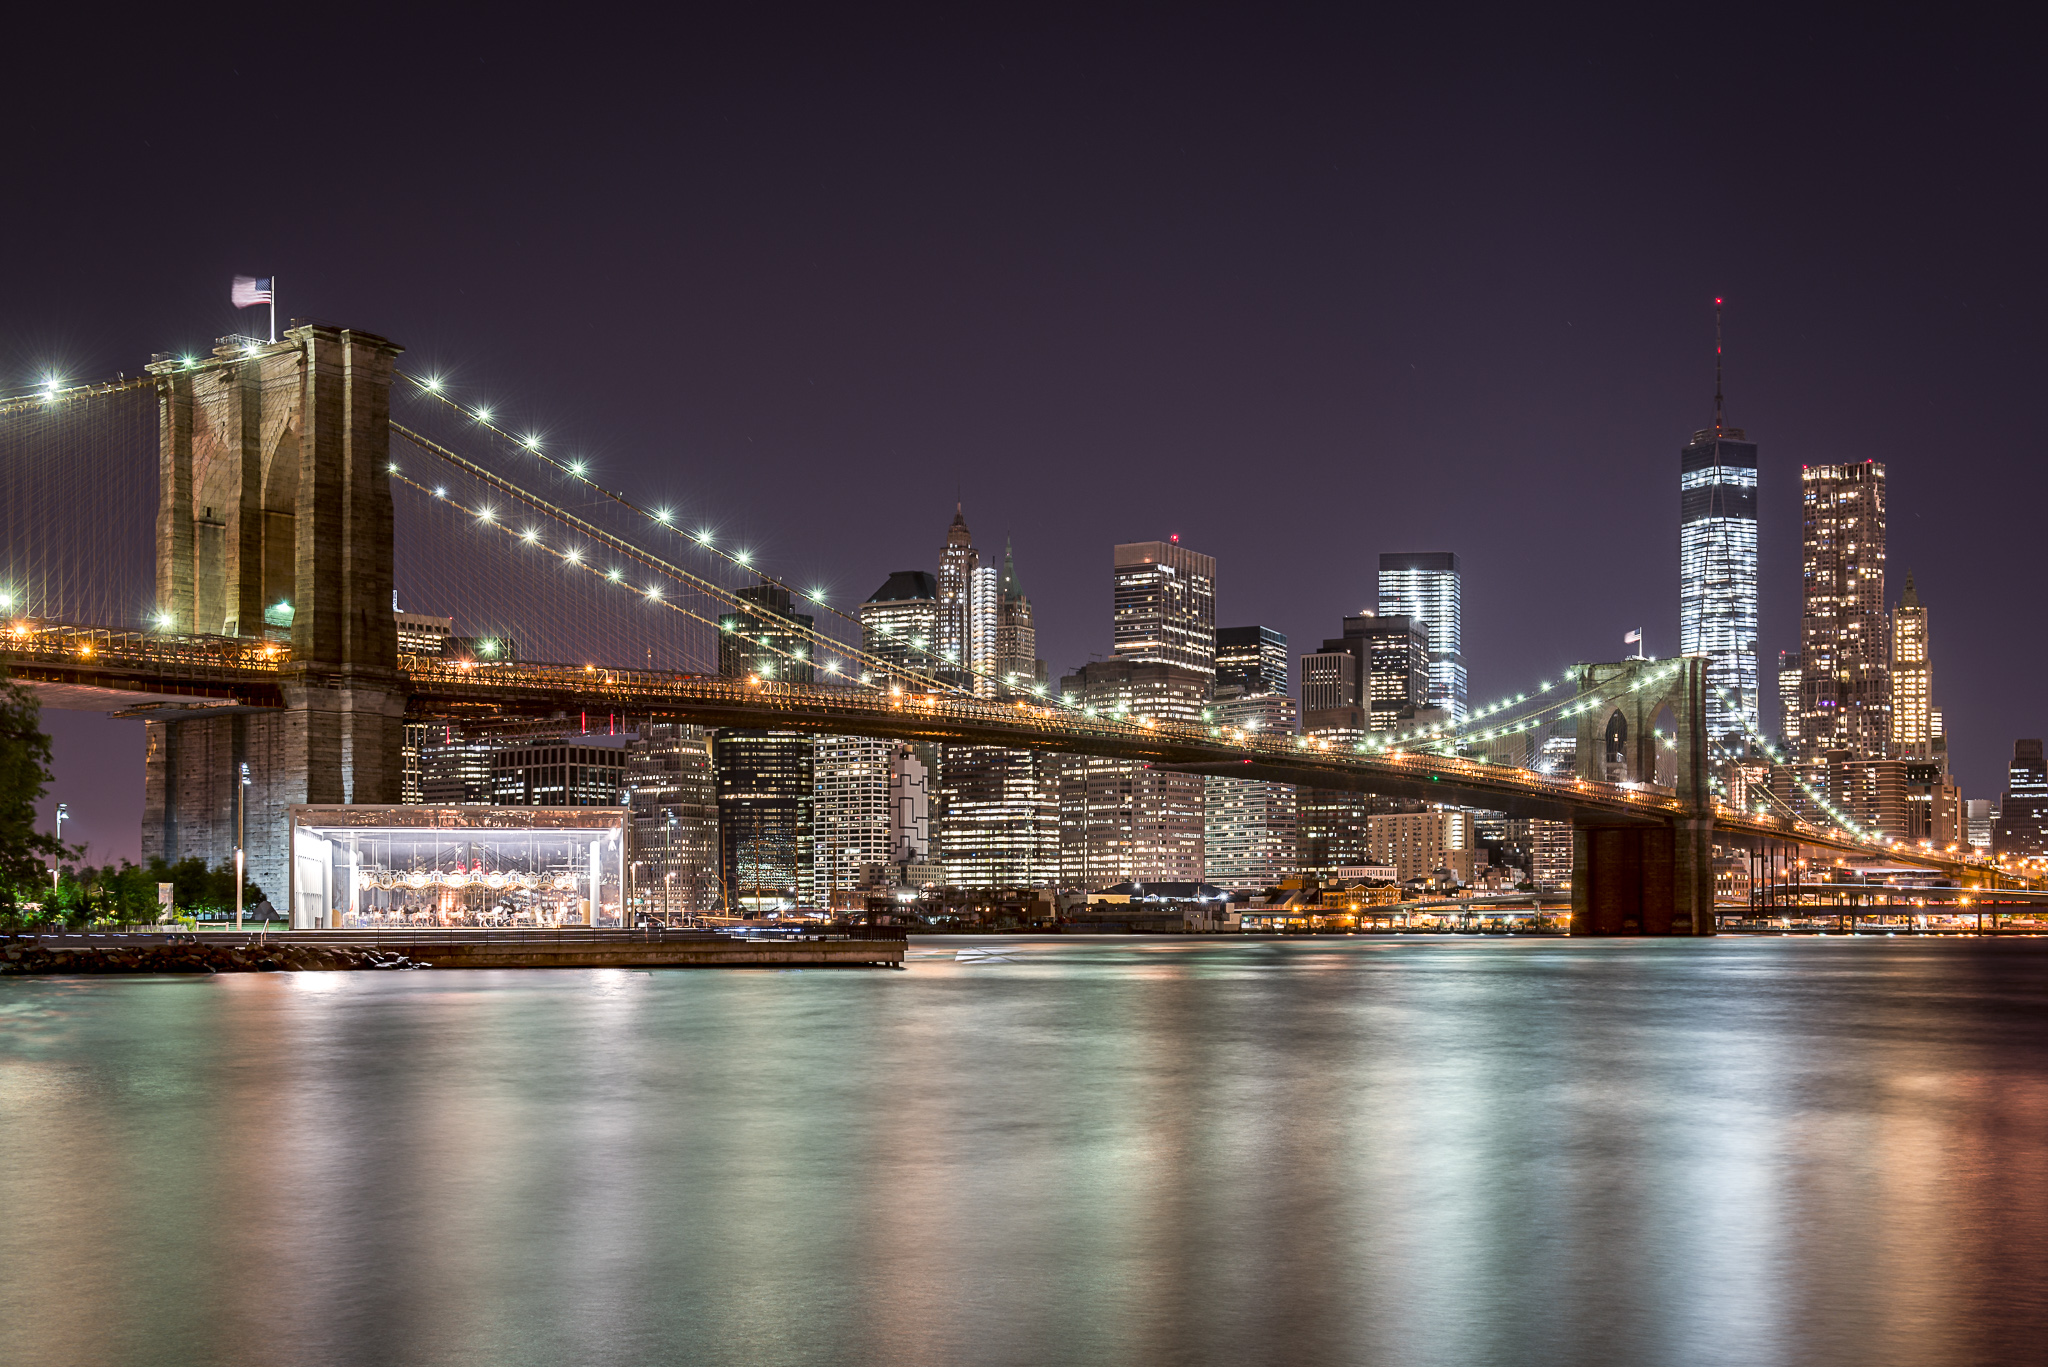 New York bei Nacht mit Skyline vom Big Apple